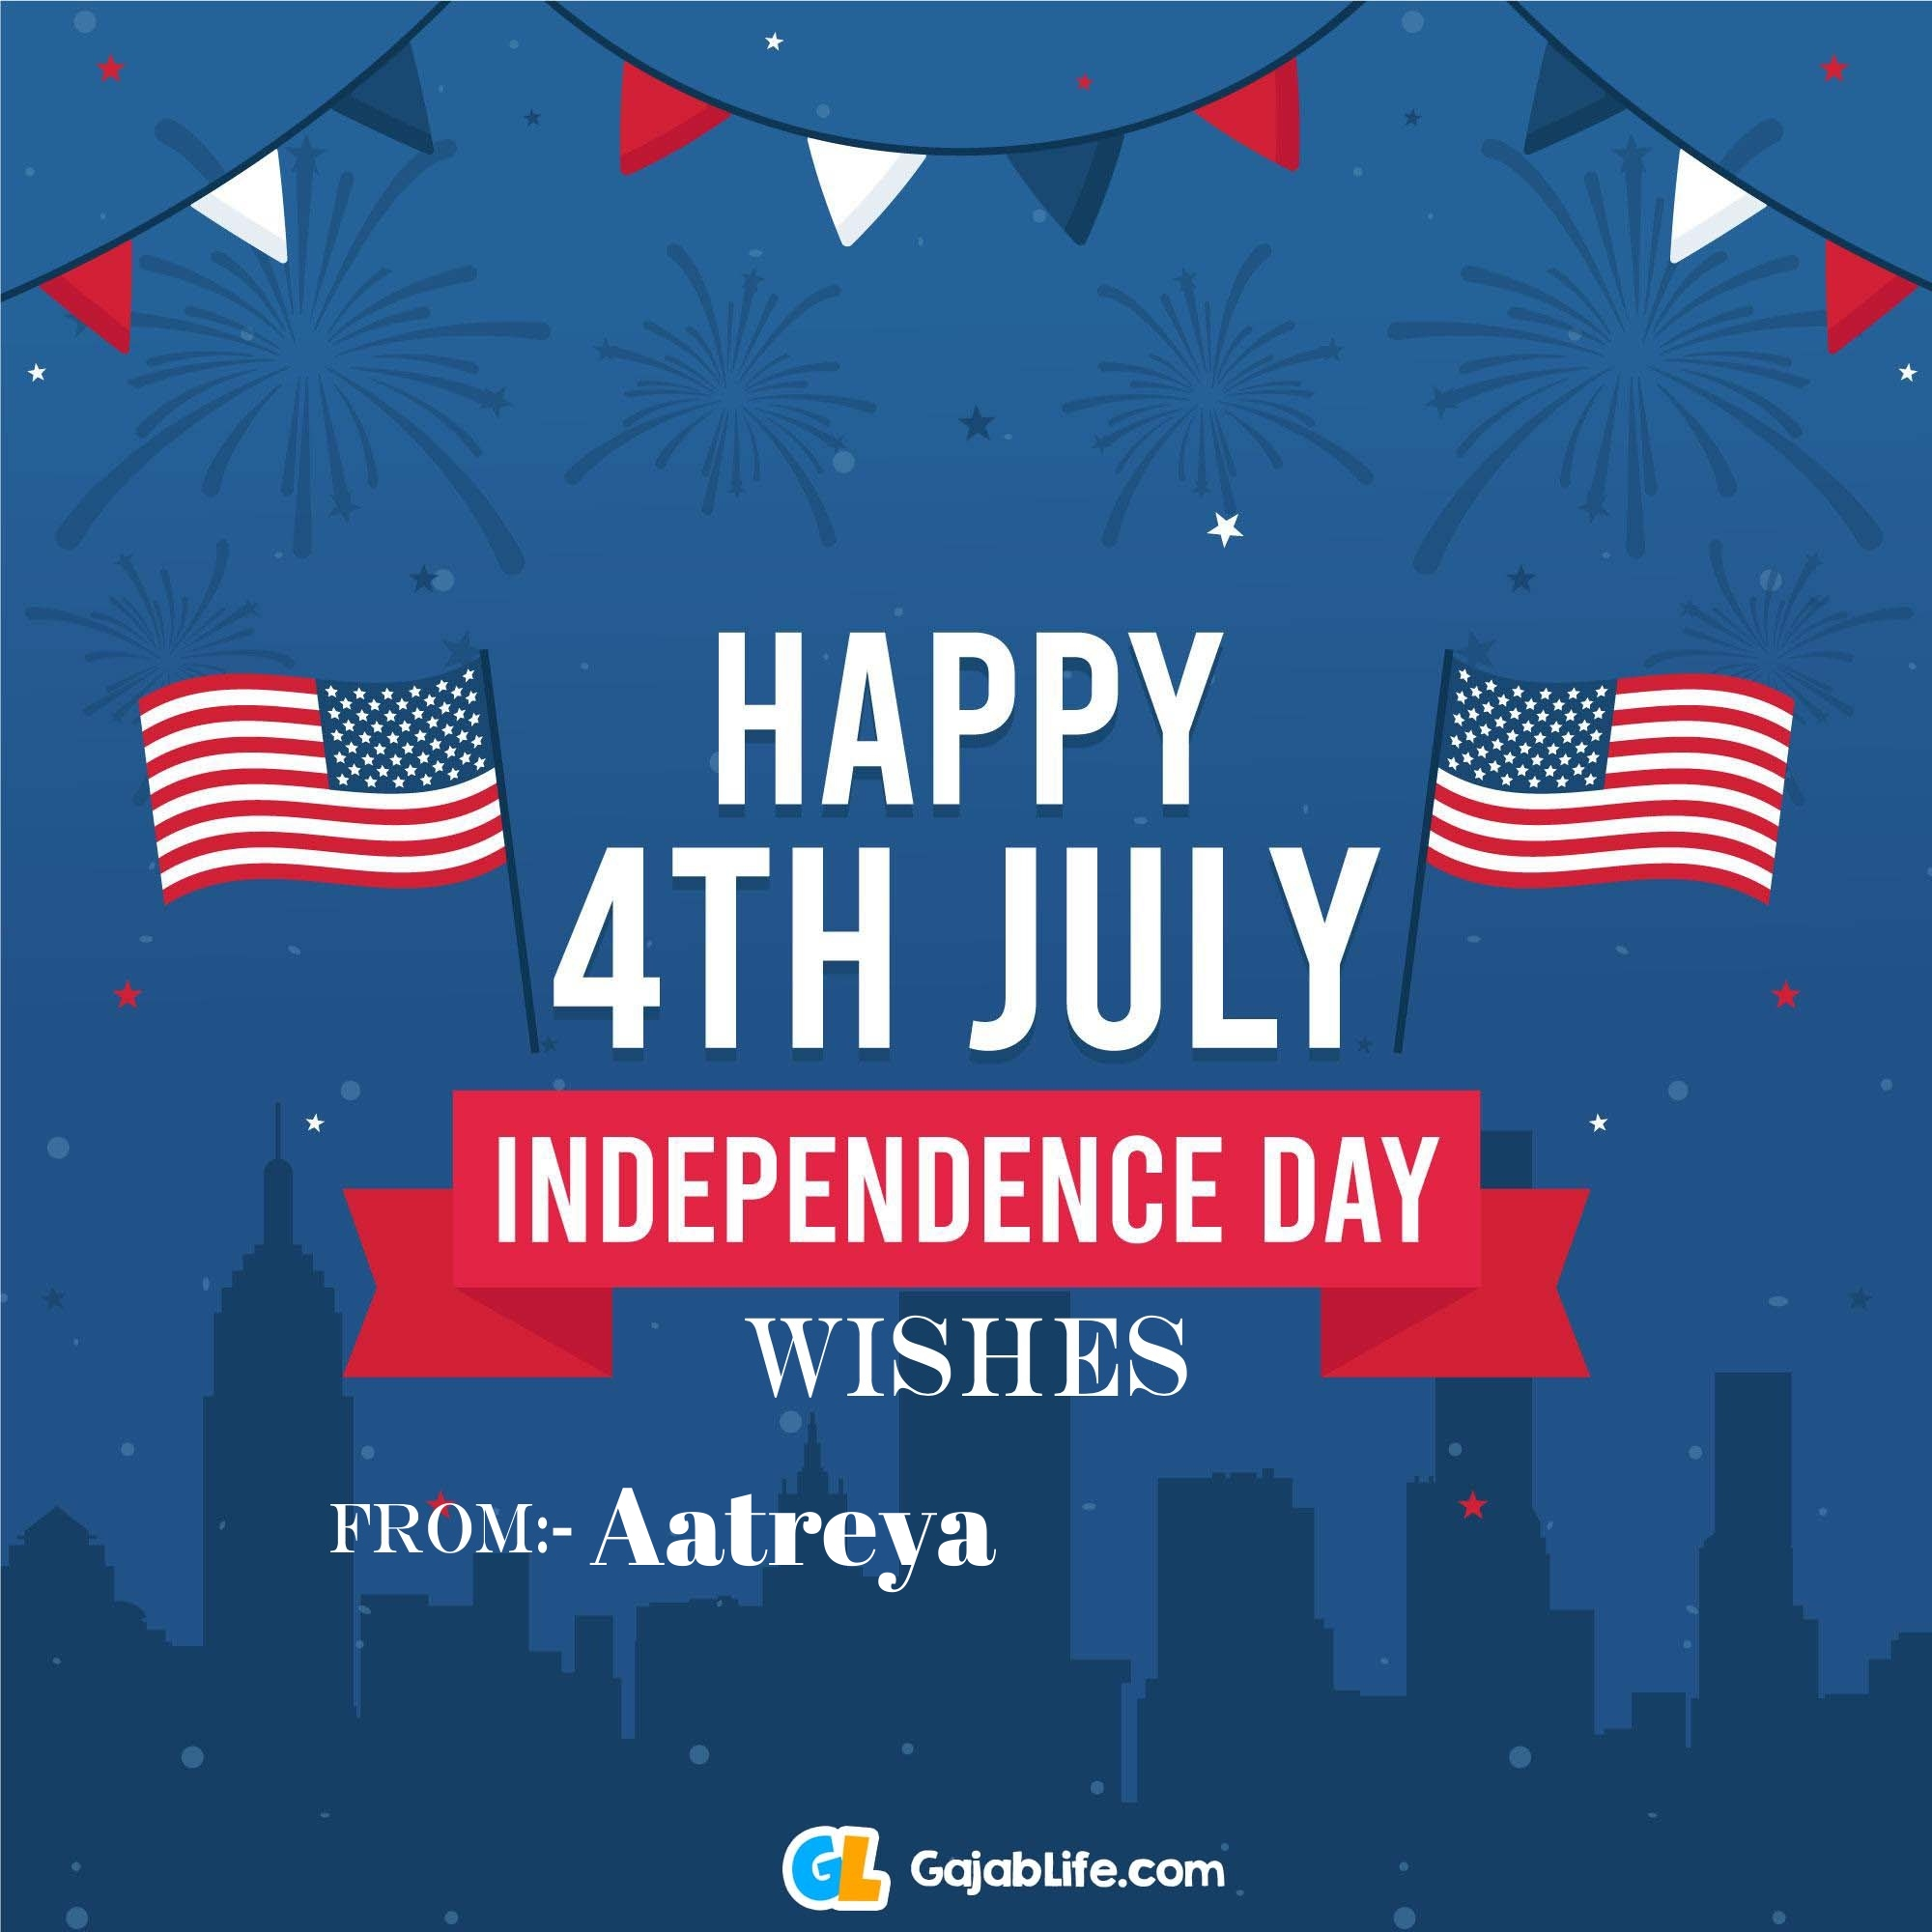 Aatreya happy independence day united states of america images